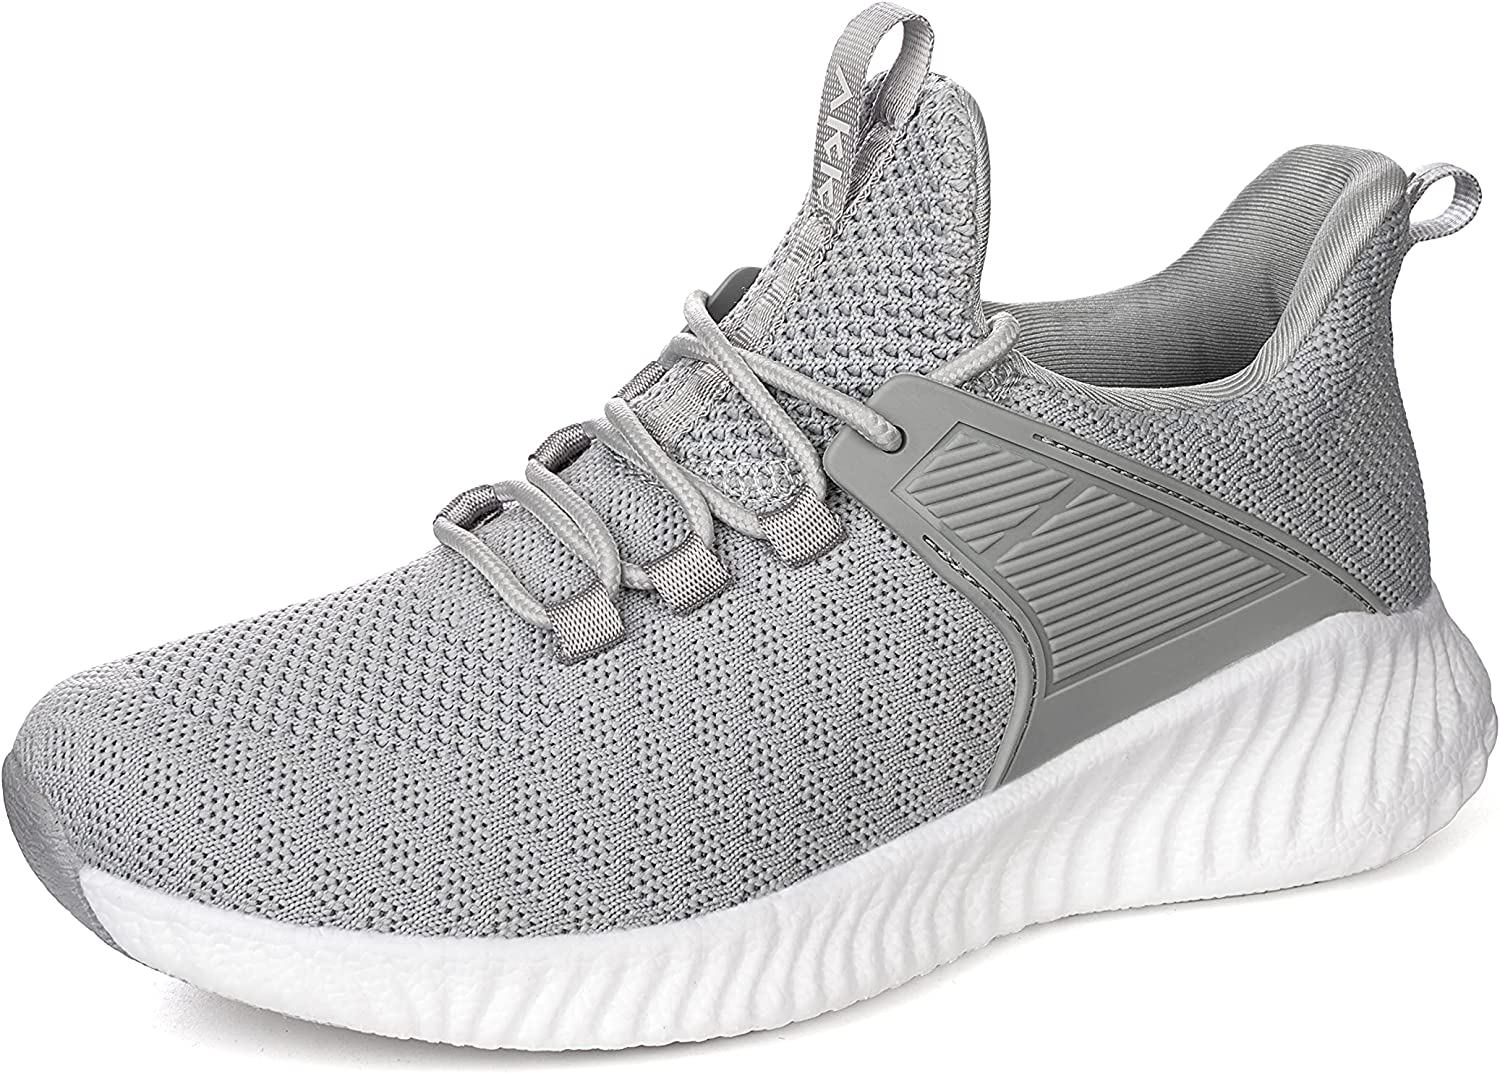 Akk Womens Running Tennis Shoes Lightweight Non Slip Breathable Mesh Sneakers Sports Athletic Work Shoes